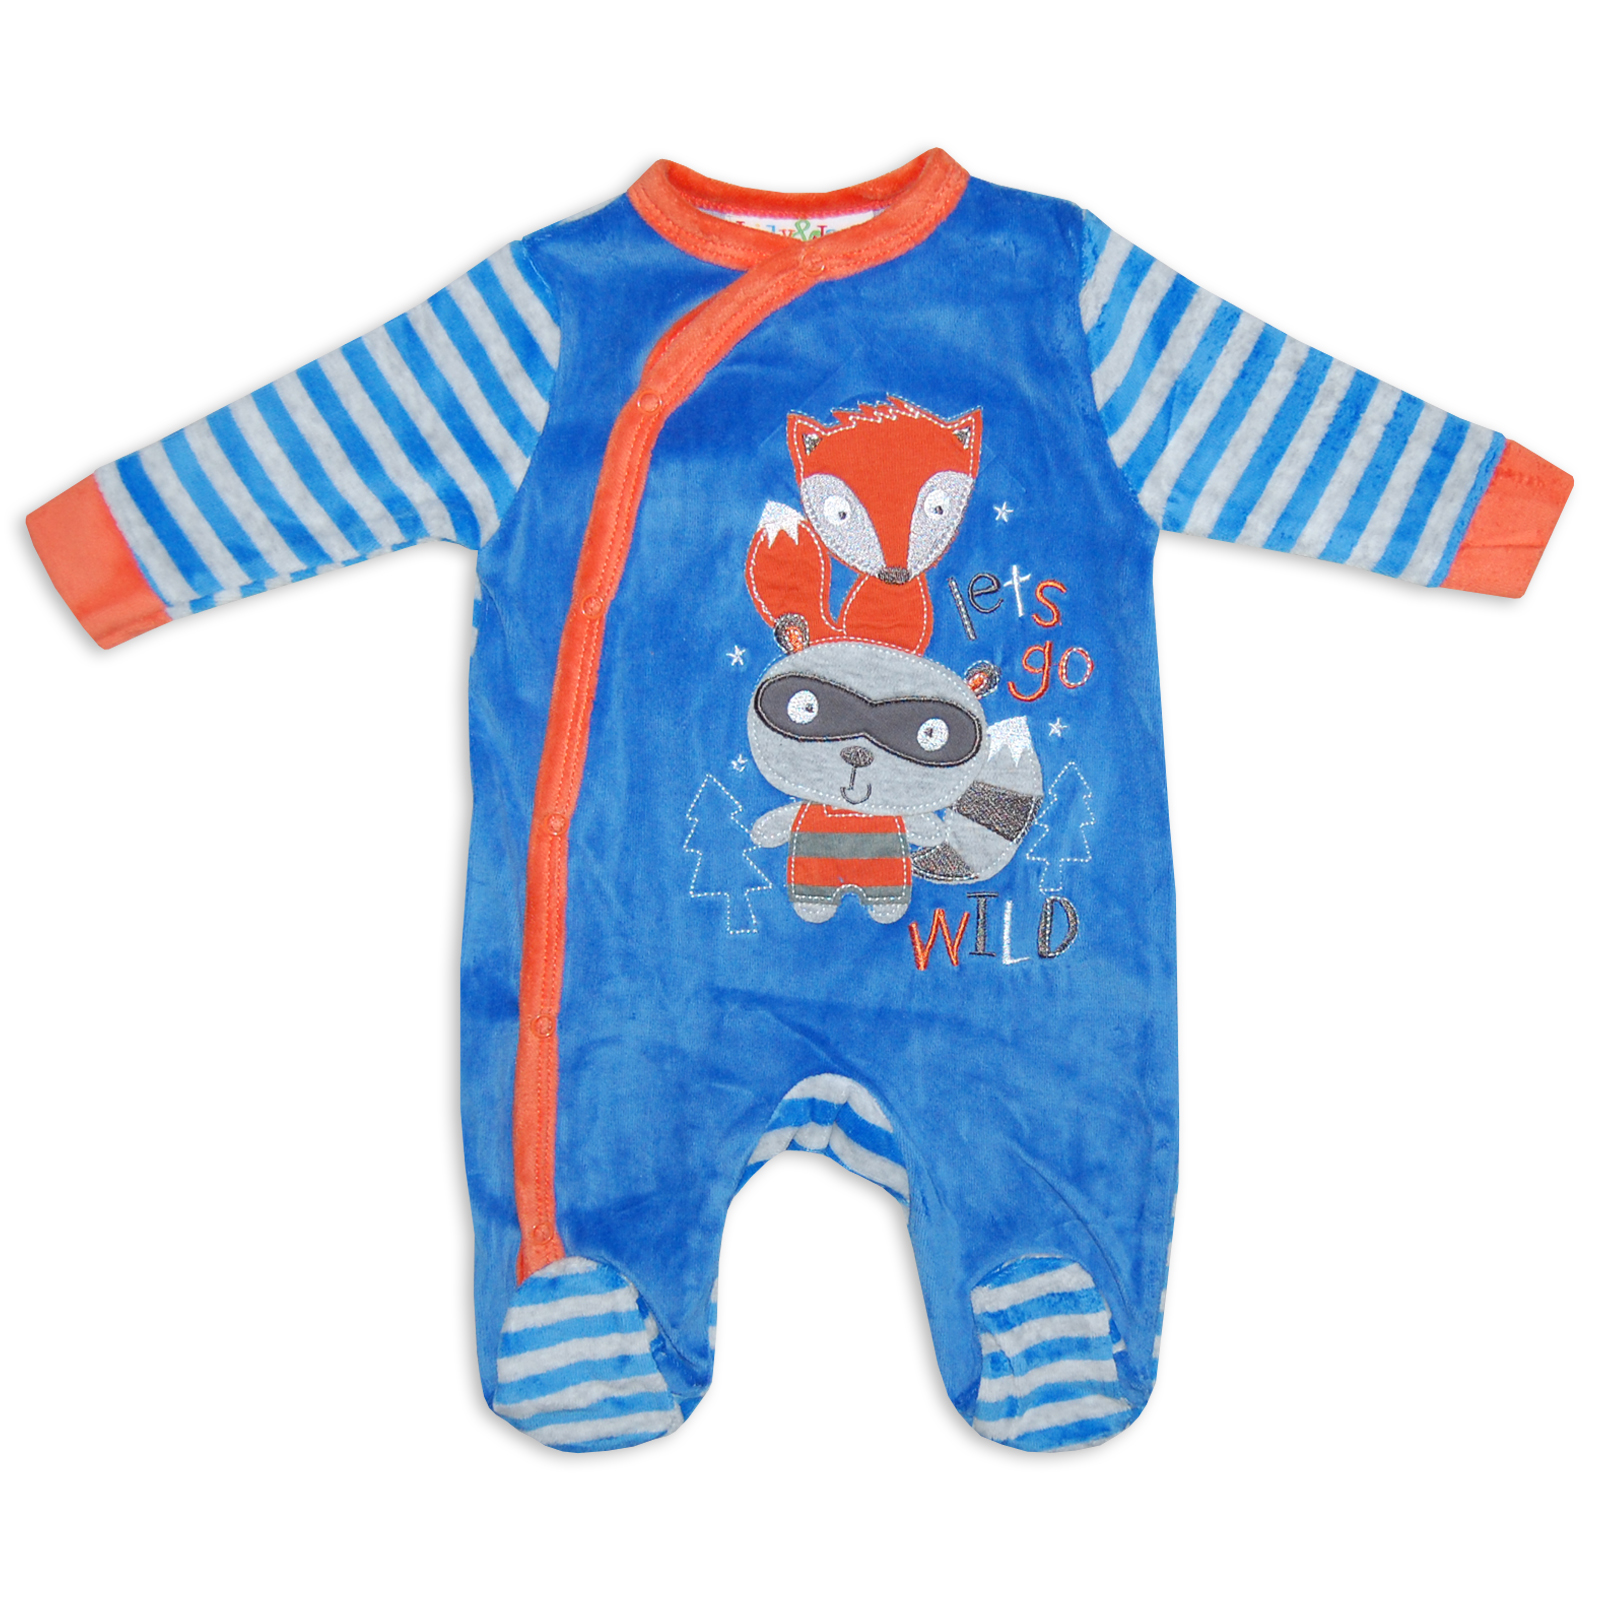 Pack of 3 velour sleepsuits. Pack comprises 1 with clouds print, 1 plain with penguin design on the front and 1 plain with lettering on the front. Press-stud fastening at the back and between the legs.